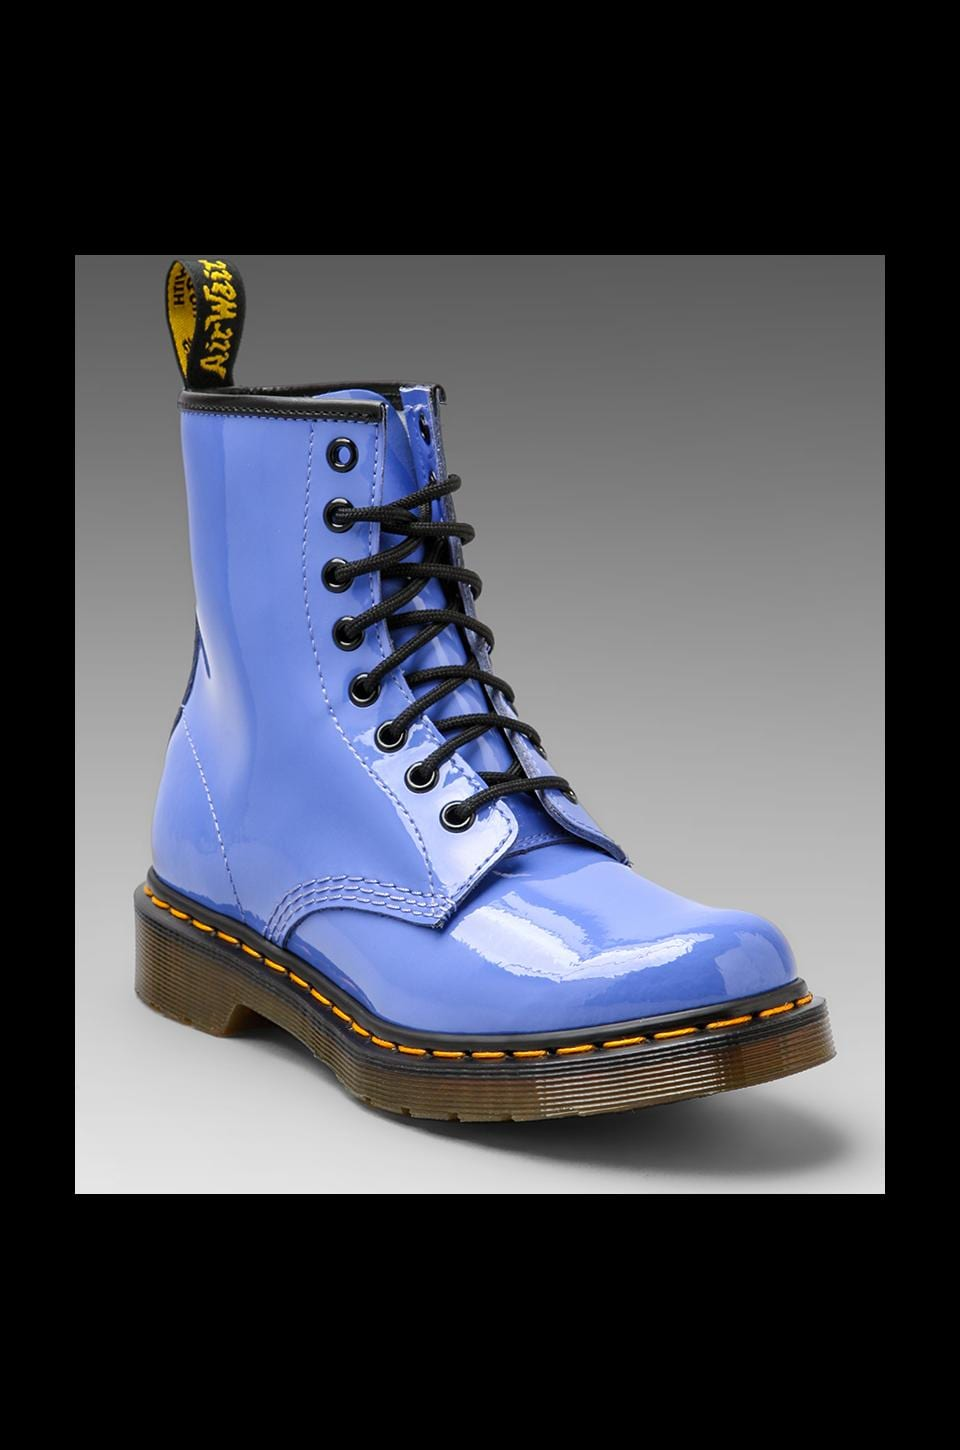 Dr. Martens 8-Eye Boot in Dusty Blue